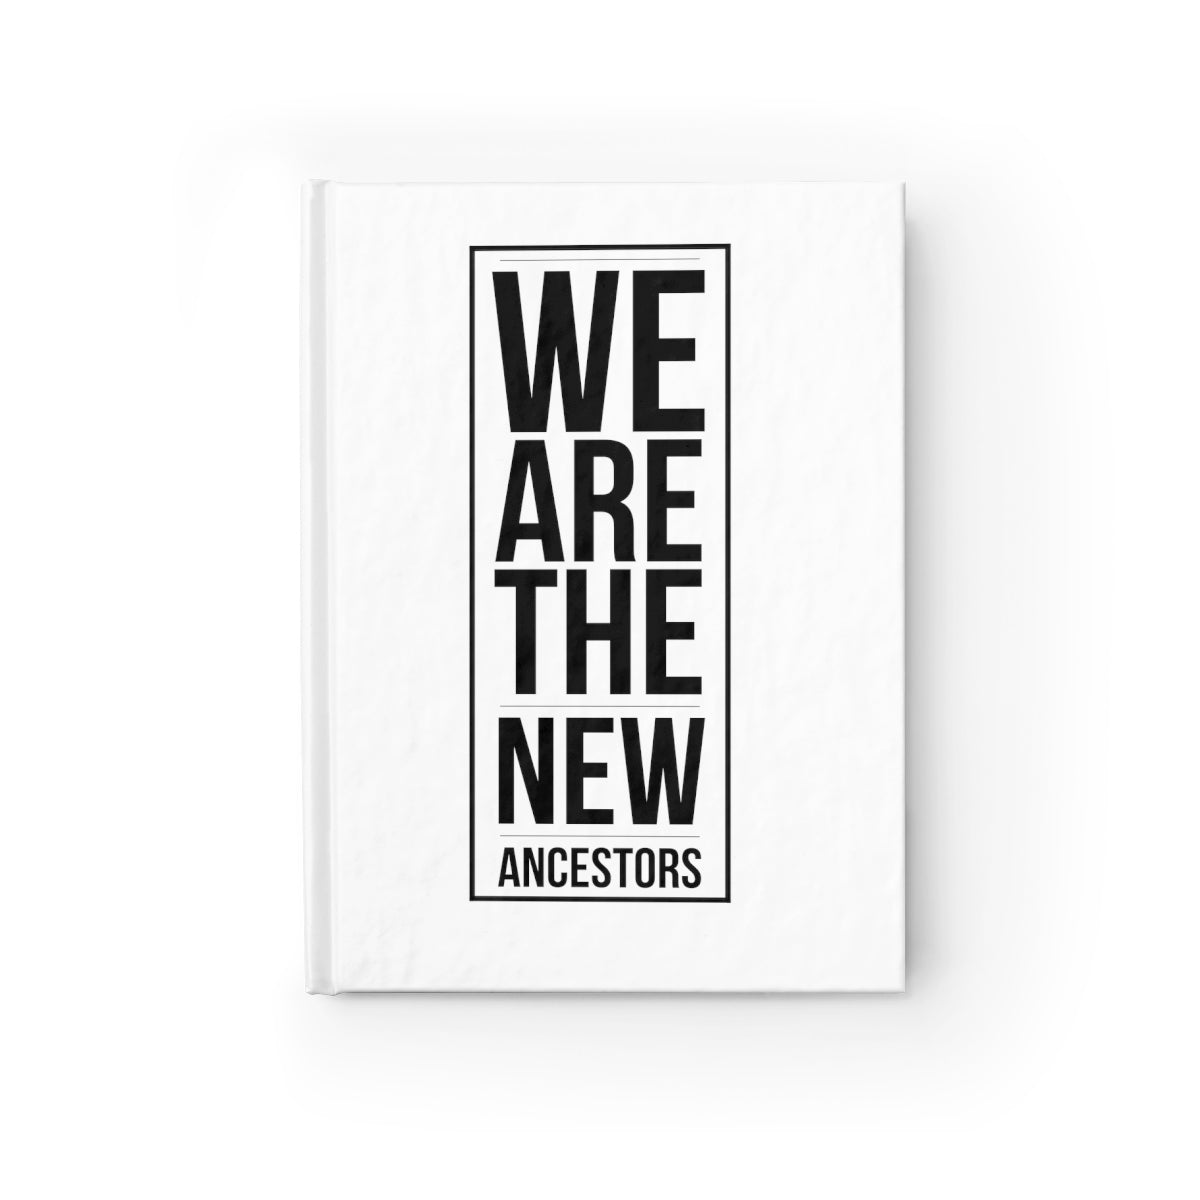 We Are The New Ancestors Journal - Ruled Line